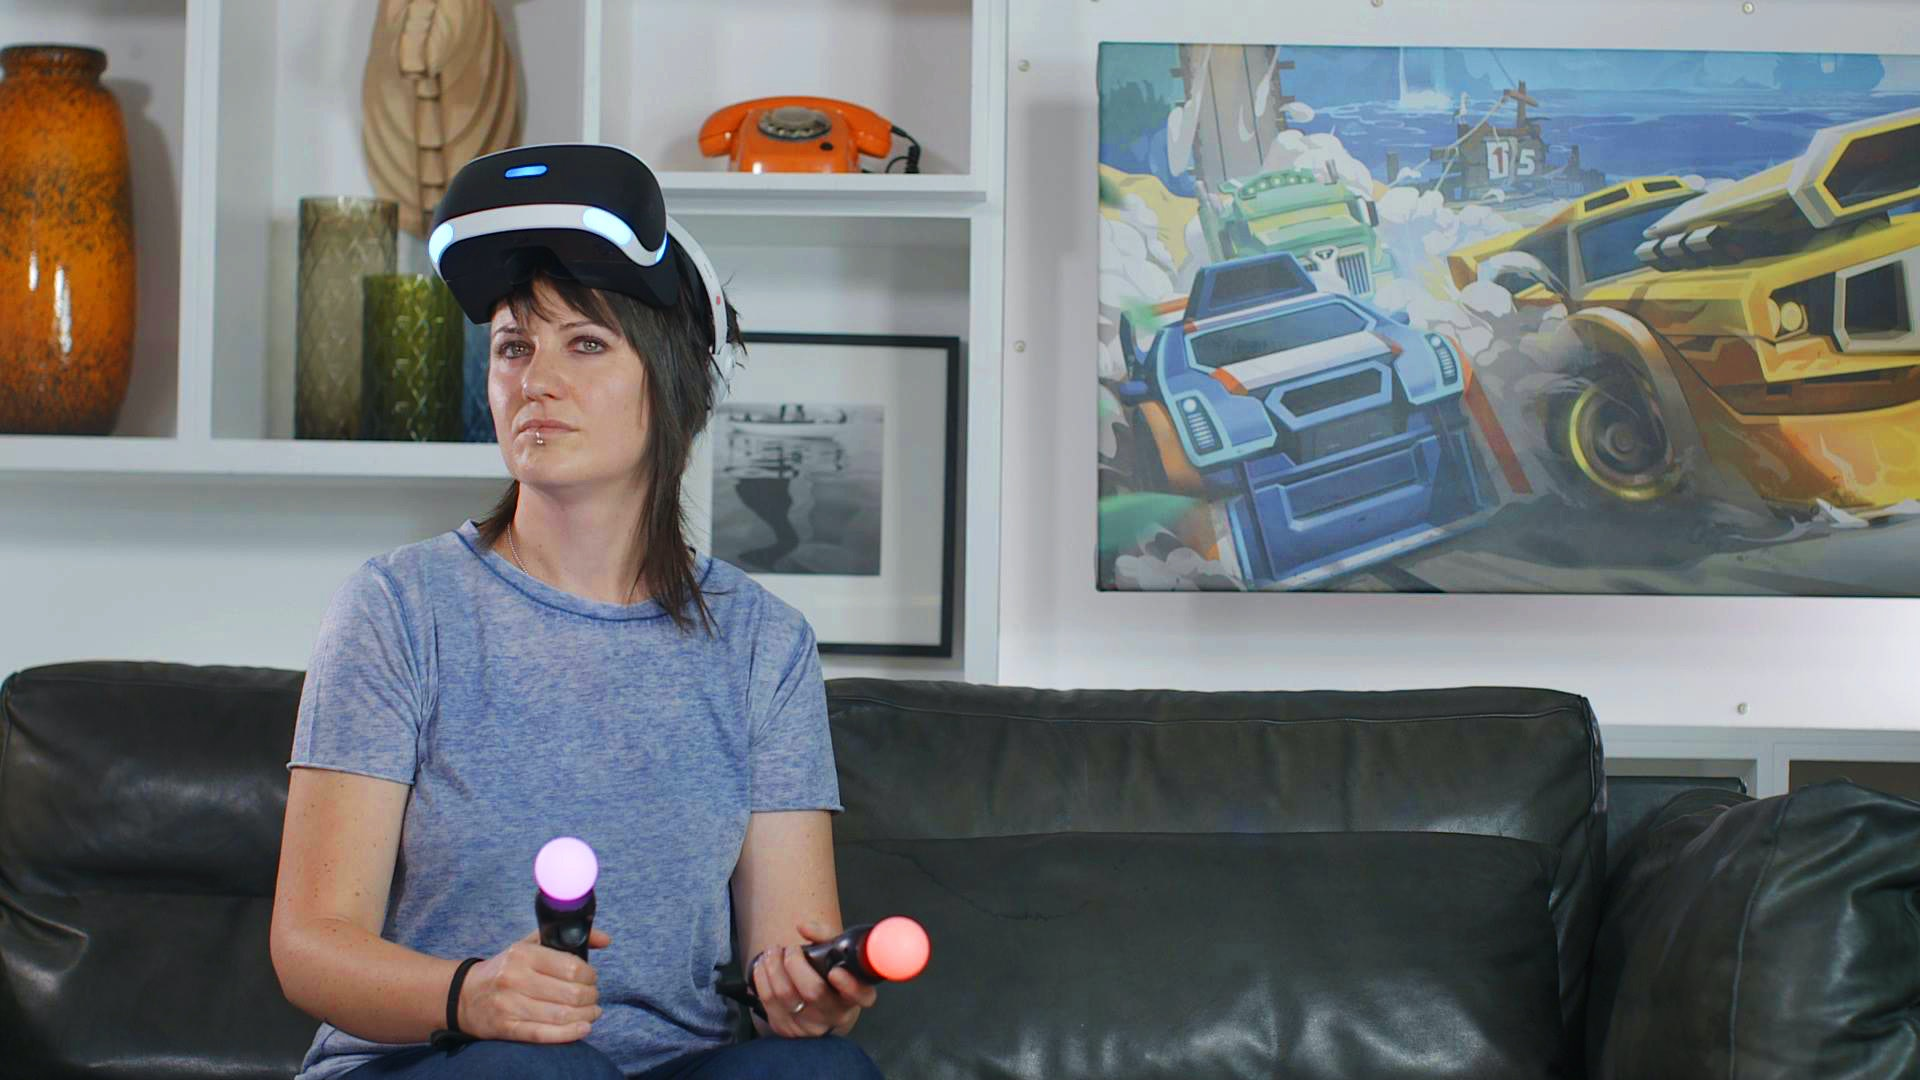 Actor Jodie Fink between takes on Big Egg's Futurlab trailer shoot, wearing Sony Playstation VR headset